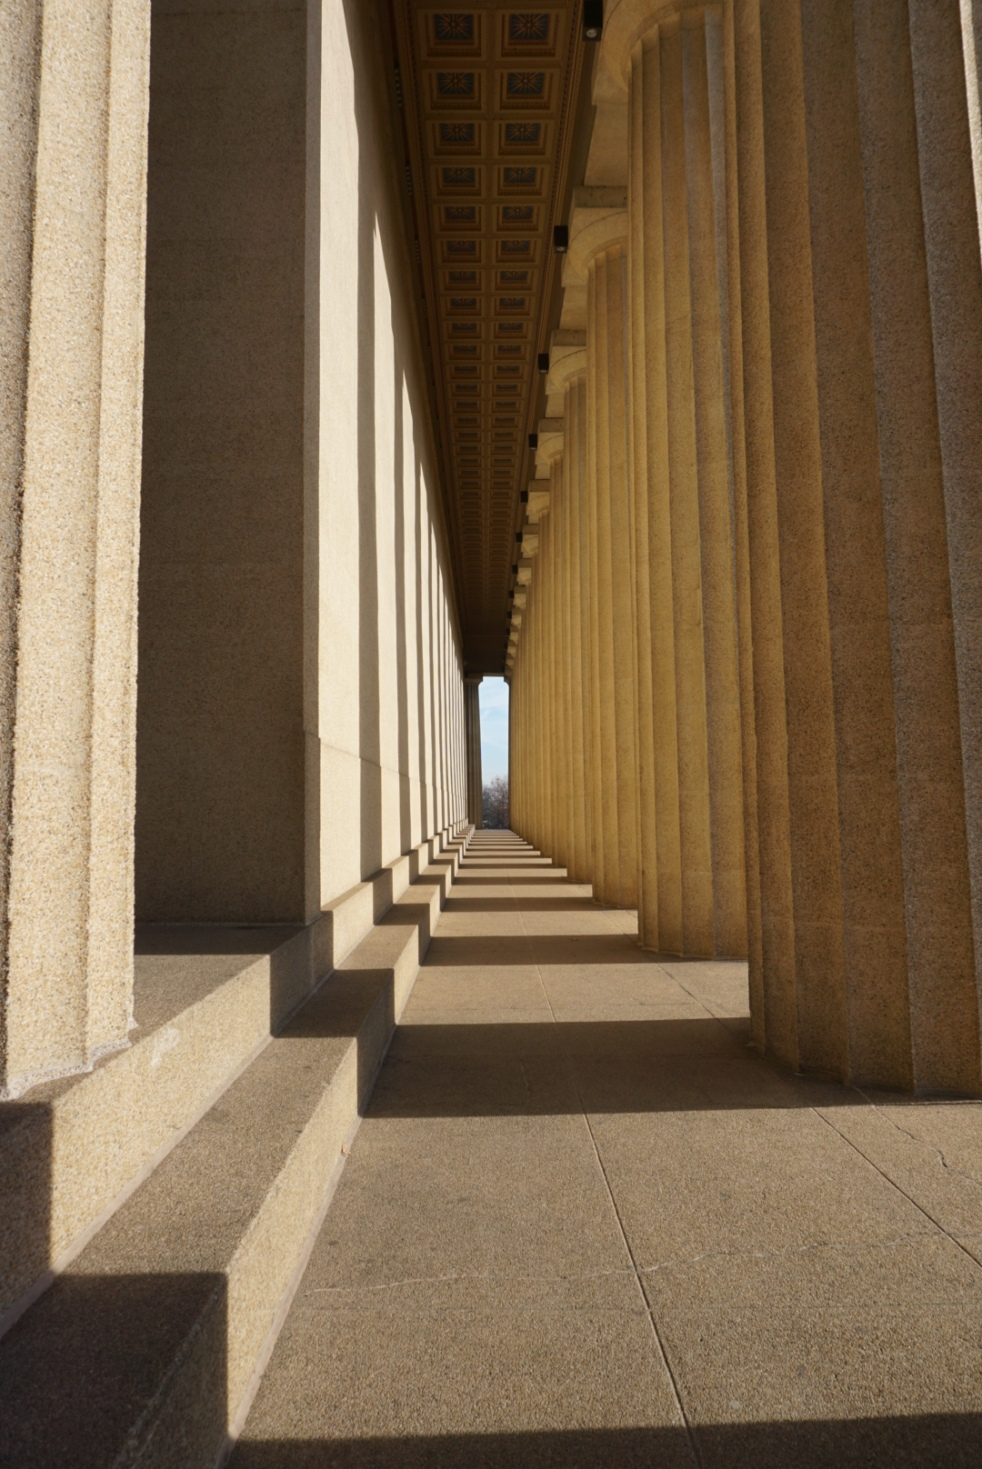 An image on the side of the Parthenon with the sun making a pattern between columns.